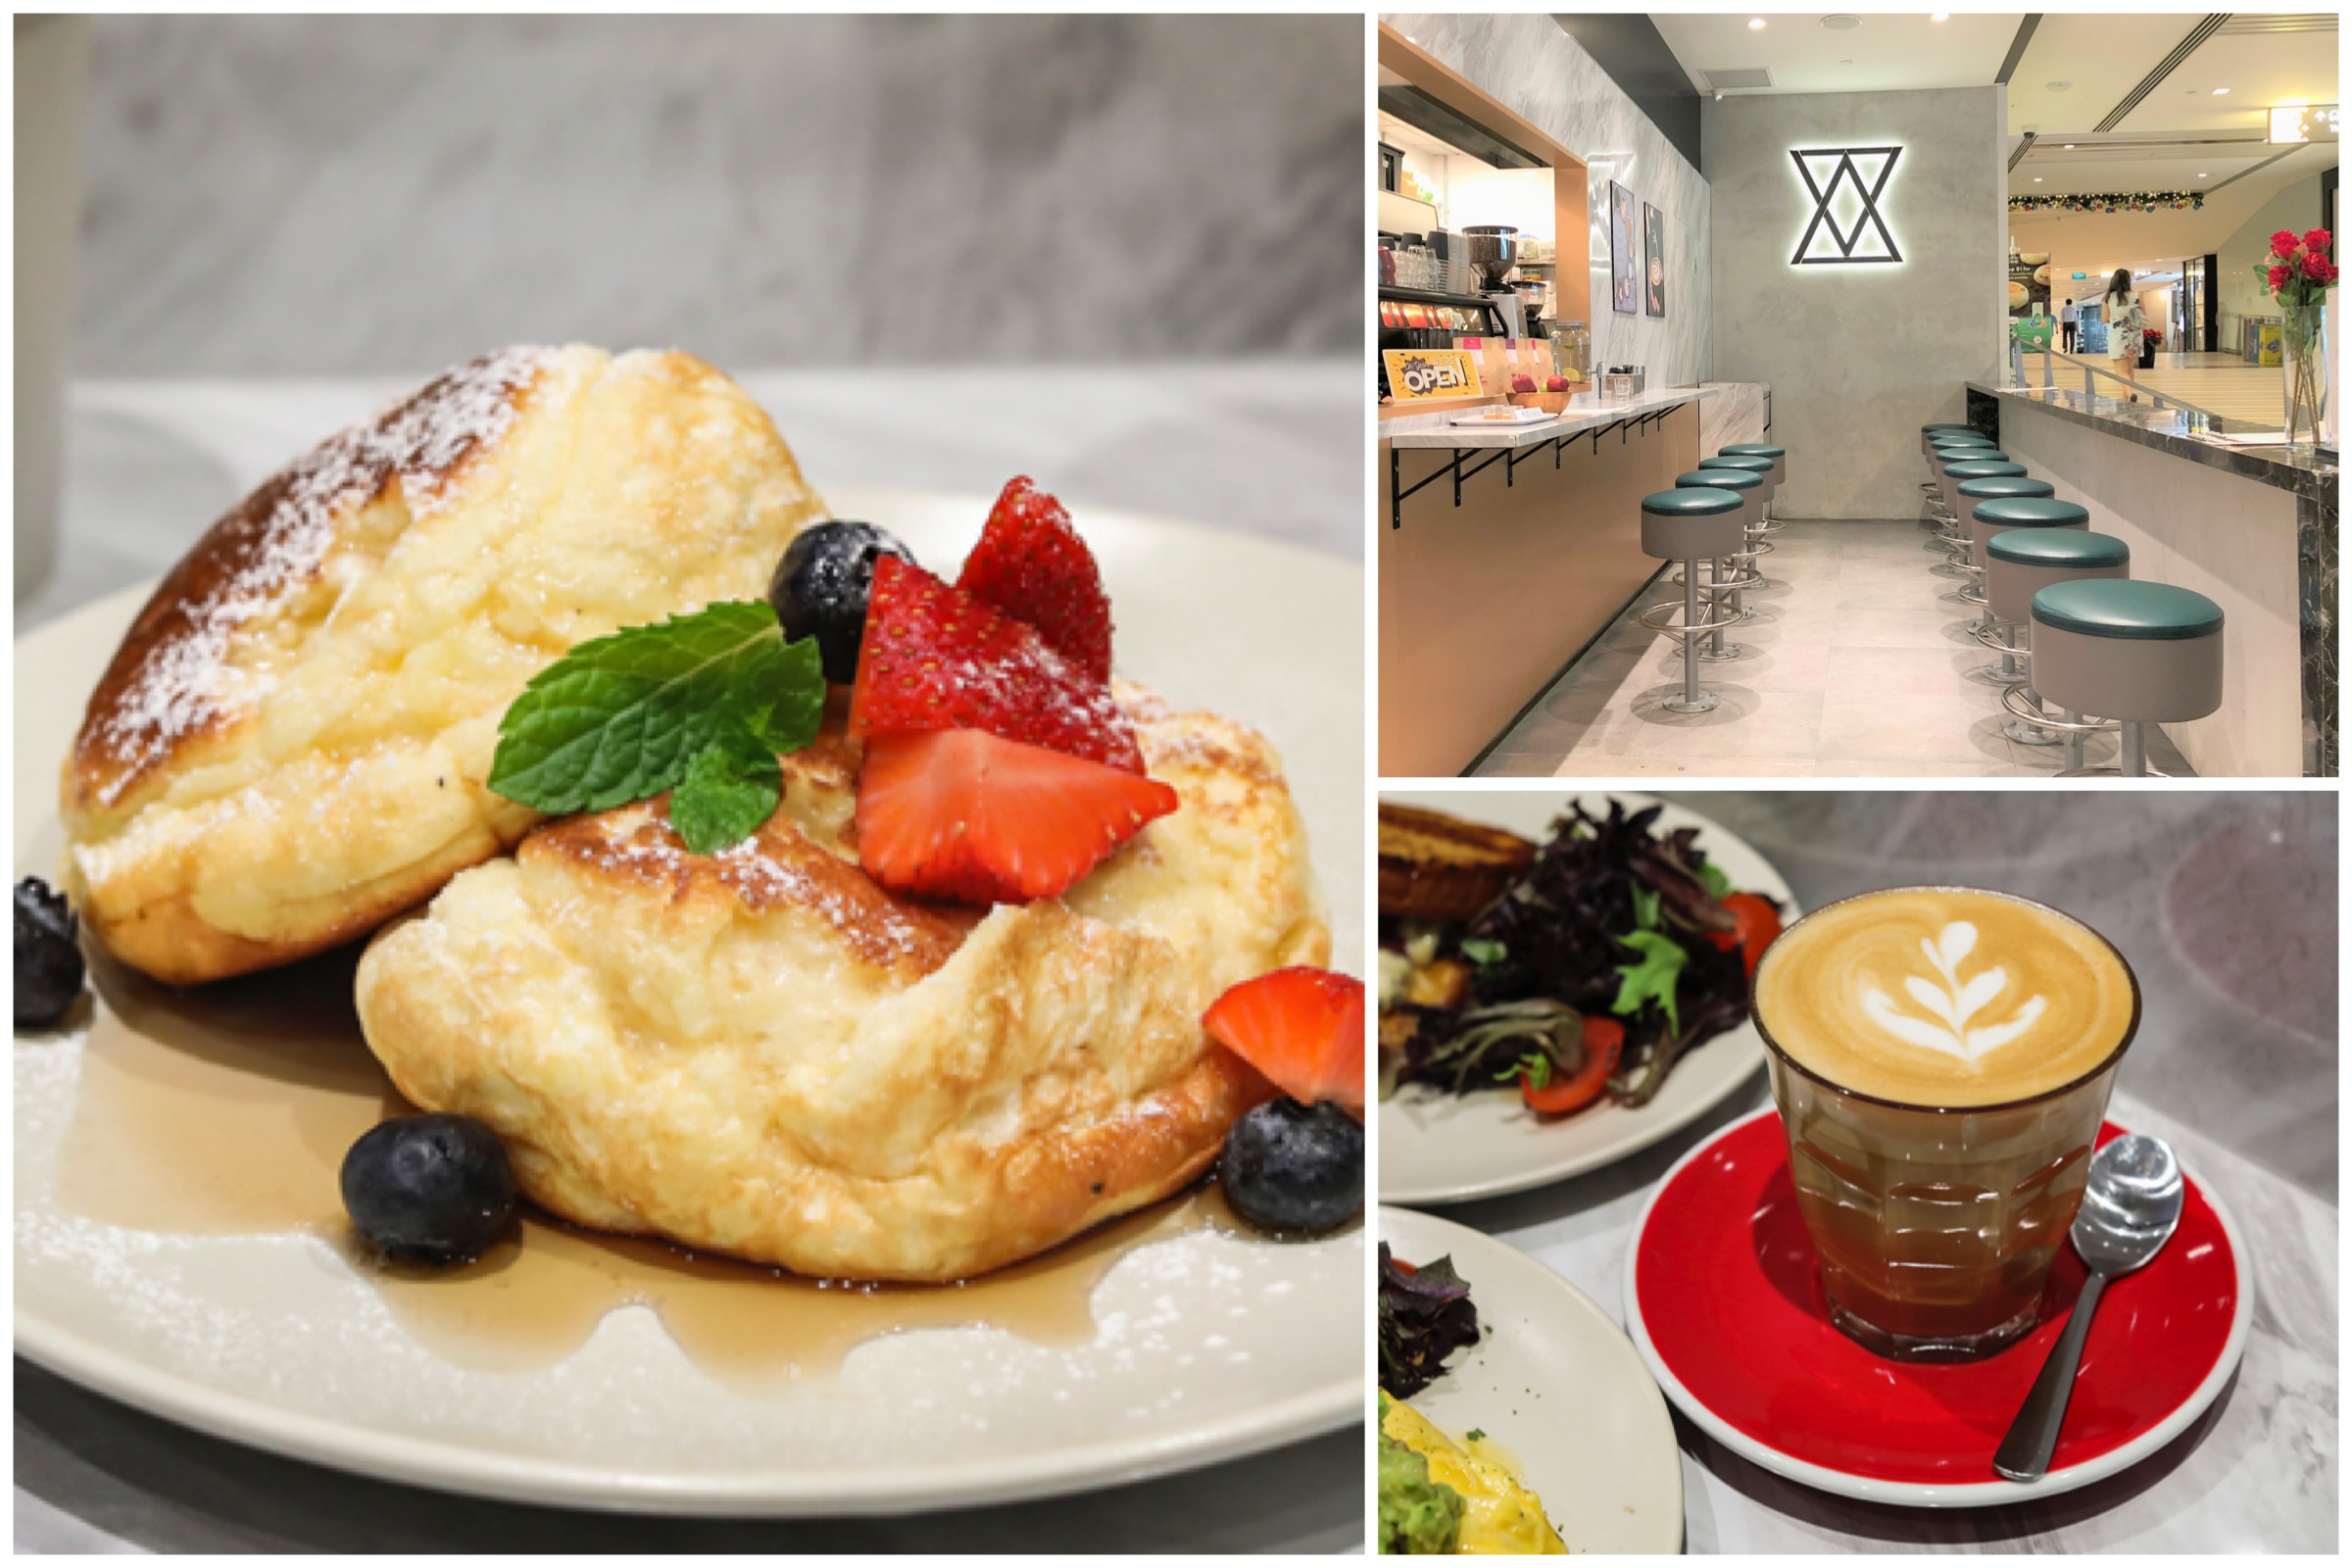 [Closed] JAB Coffee Co. - $4.50 Souffle Pancakes, Affordable Breakfast Meals And Sandwiches At Raffles City Basement